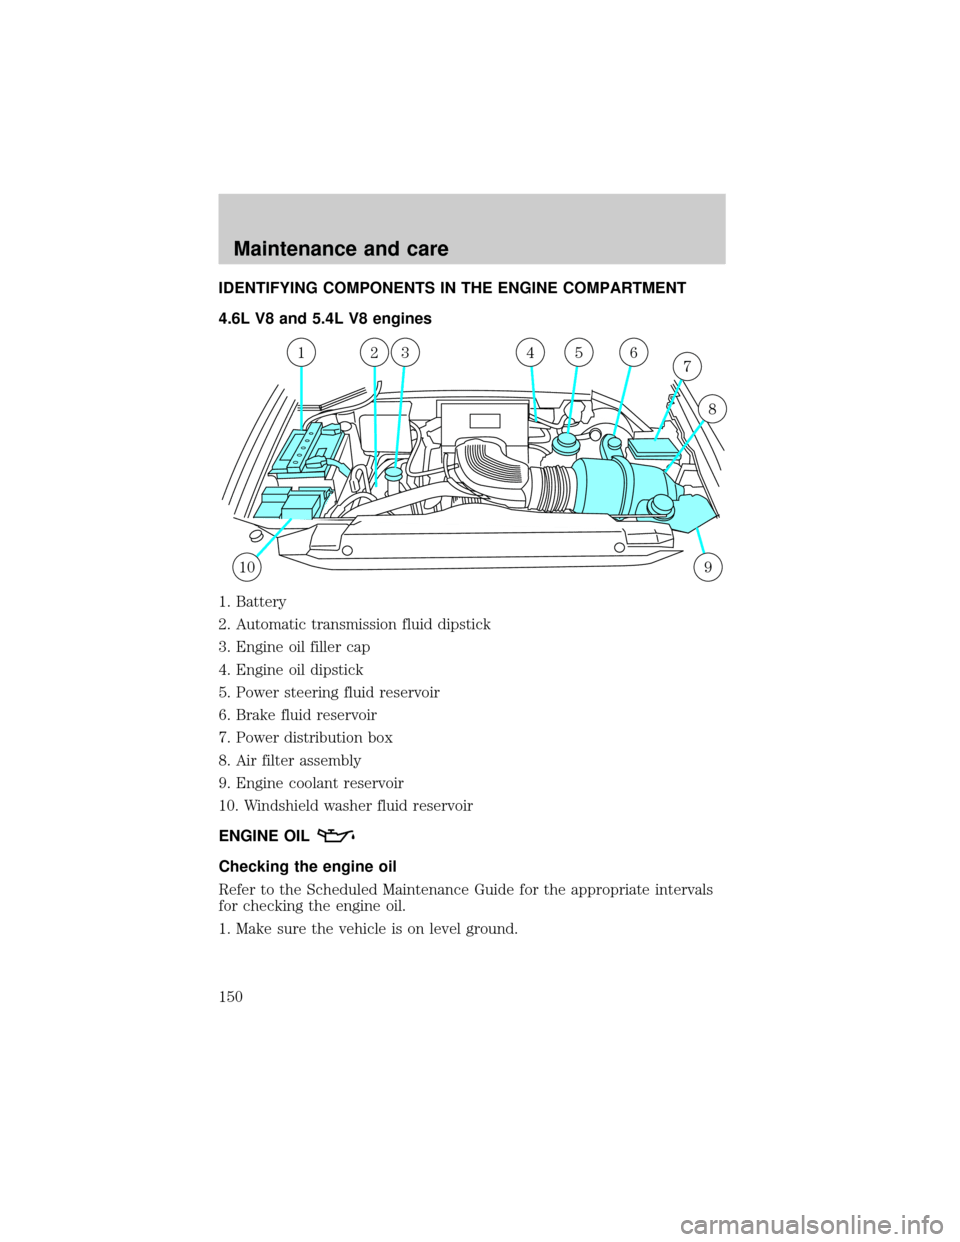 medium resolution of ford f150 2001 10 g owners manual page 150 identifying components in the